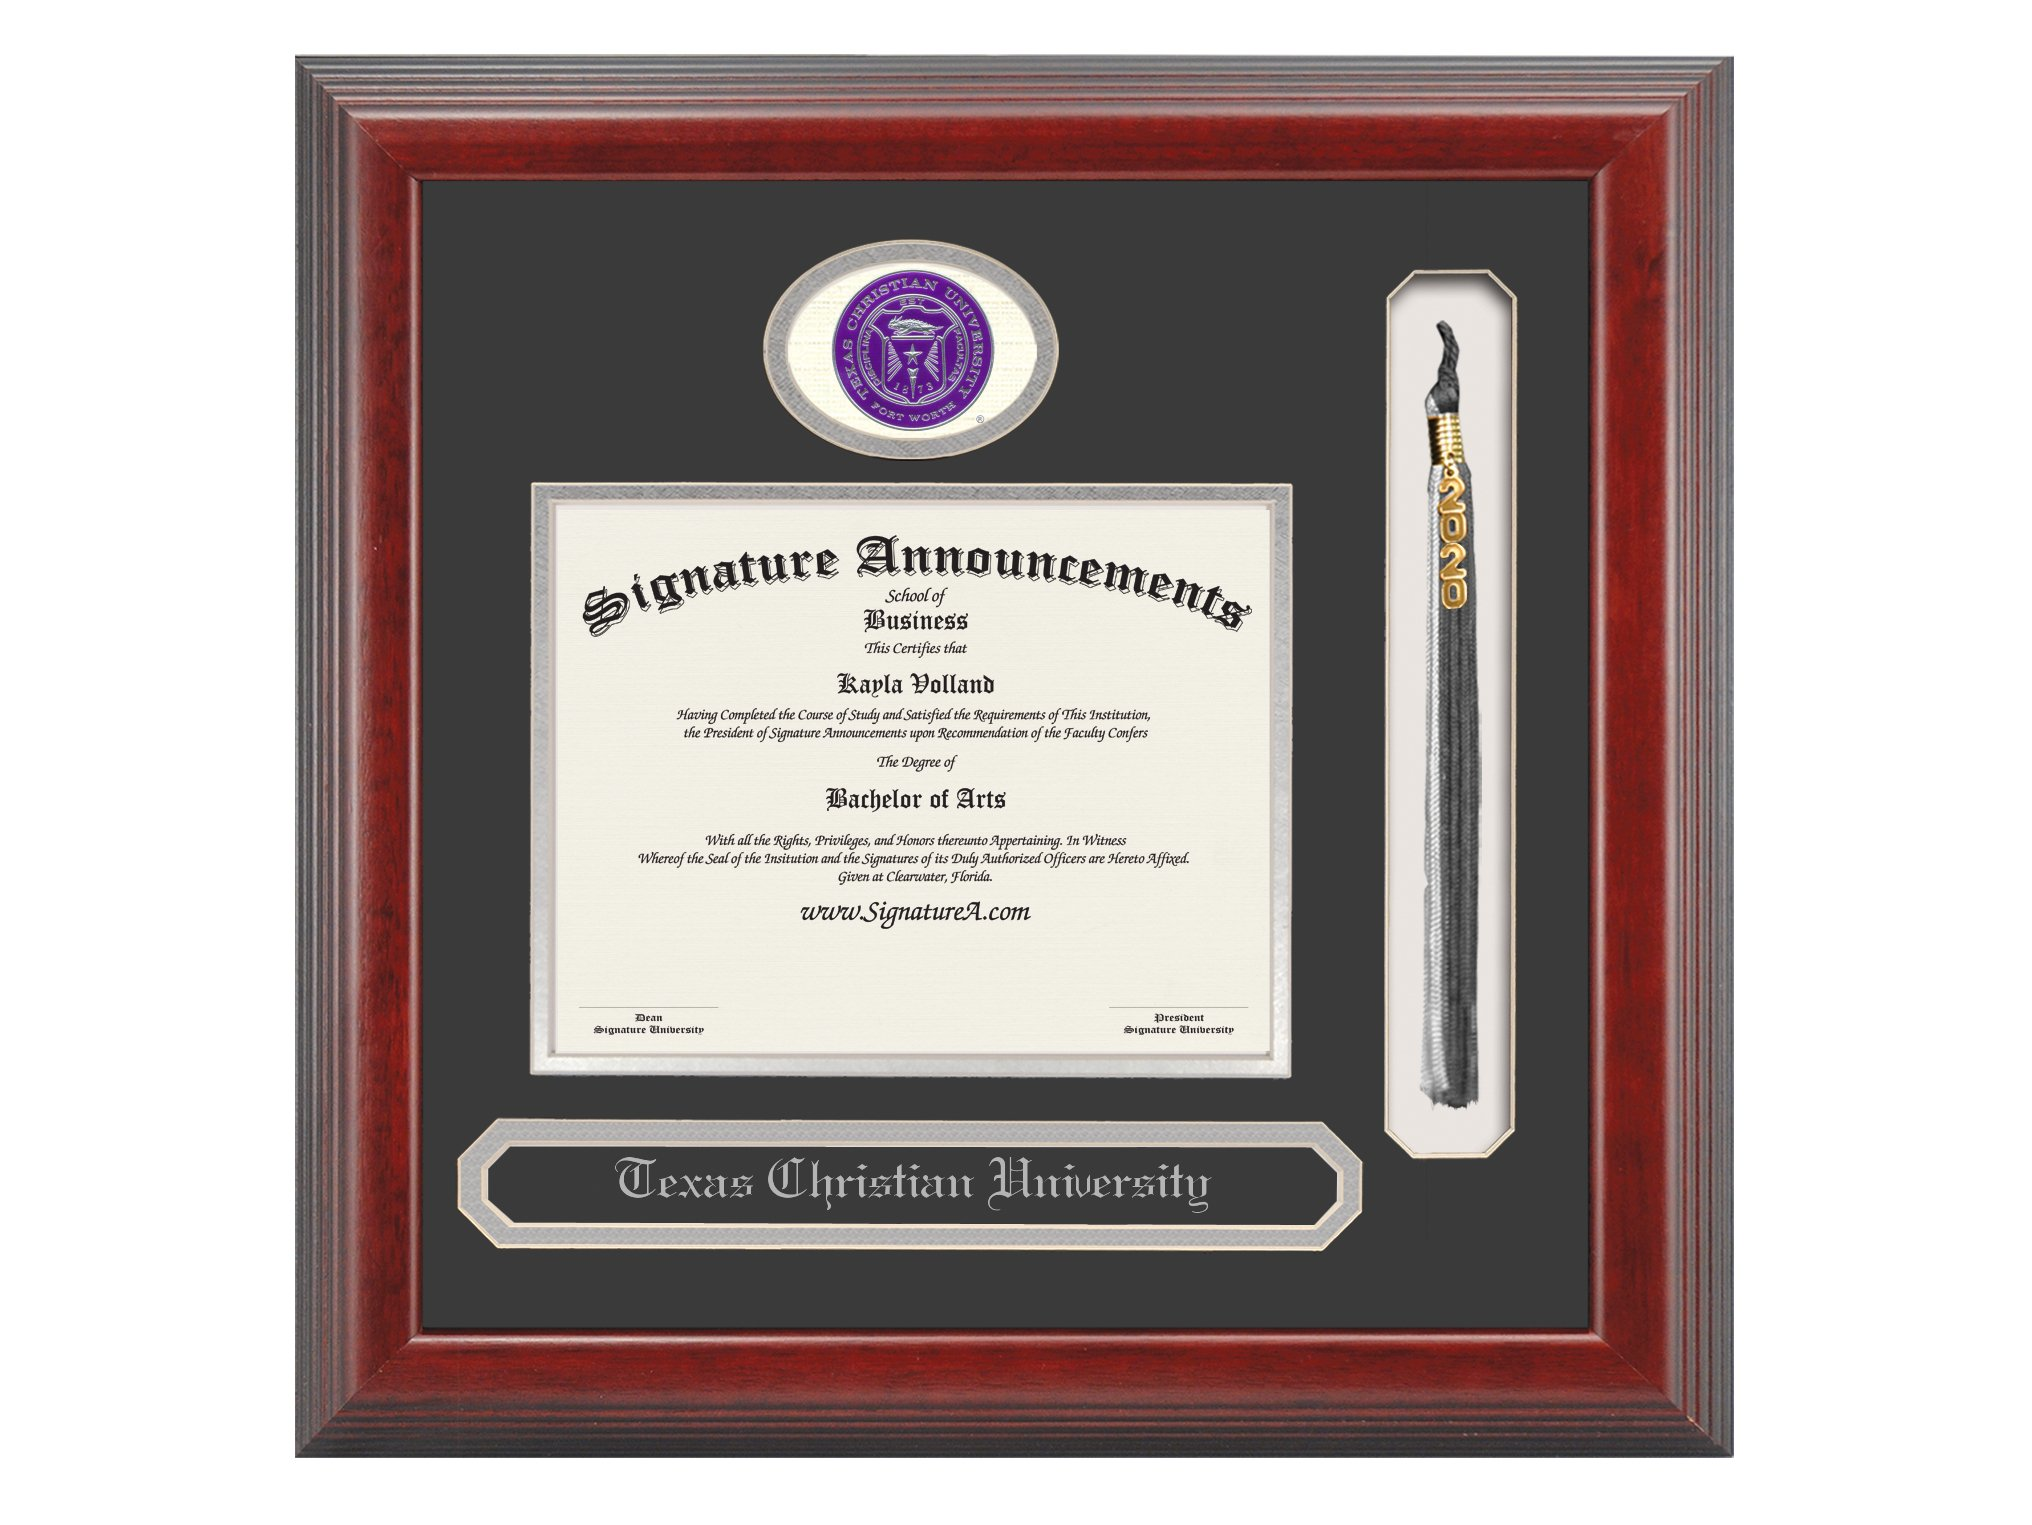 Signature Announcements Texas Christian University (TCU) Undergraduate and Graduate/Professional/Doctor Graduation Diploma Frame with Sculpted Foil Seal, Name & Tassel (Cherry, 16 x 16) by Signature Announcements